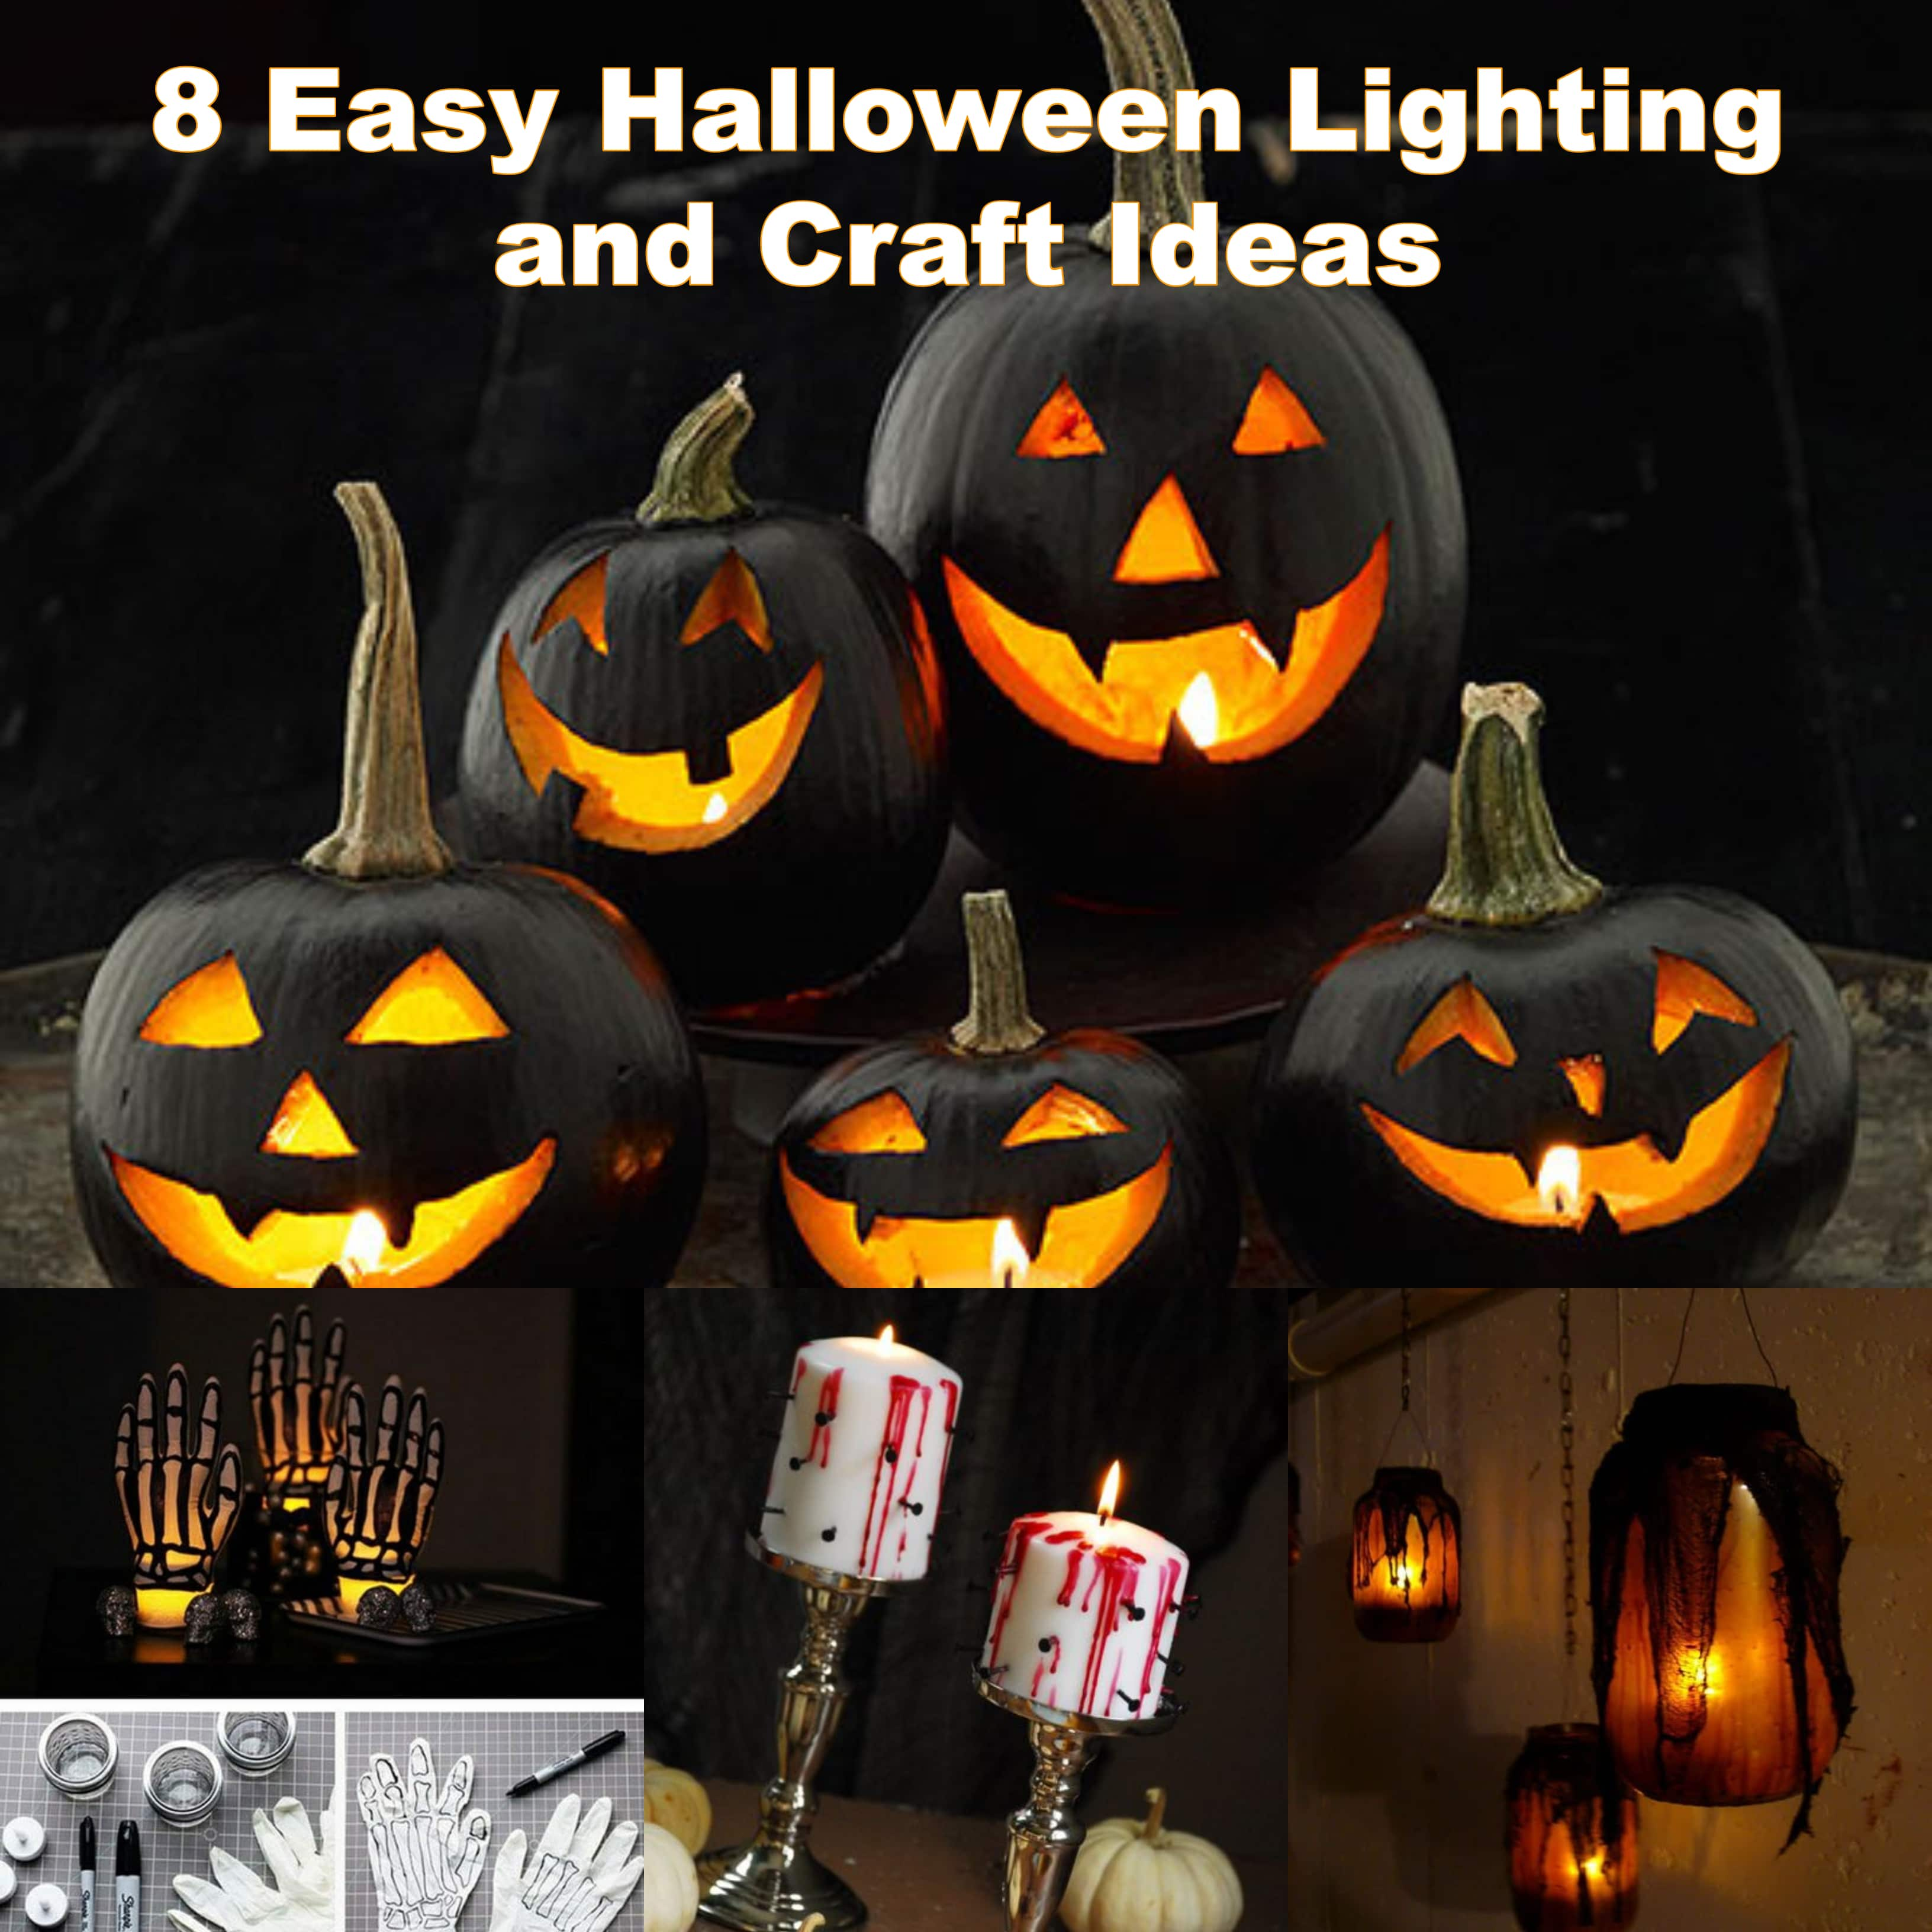 8 Easy Halloween Lighting and Craft Ideas